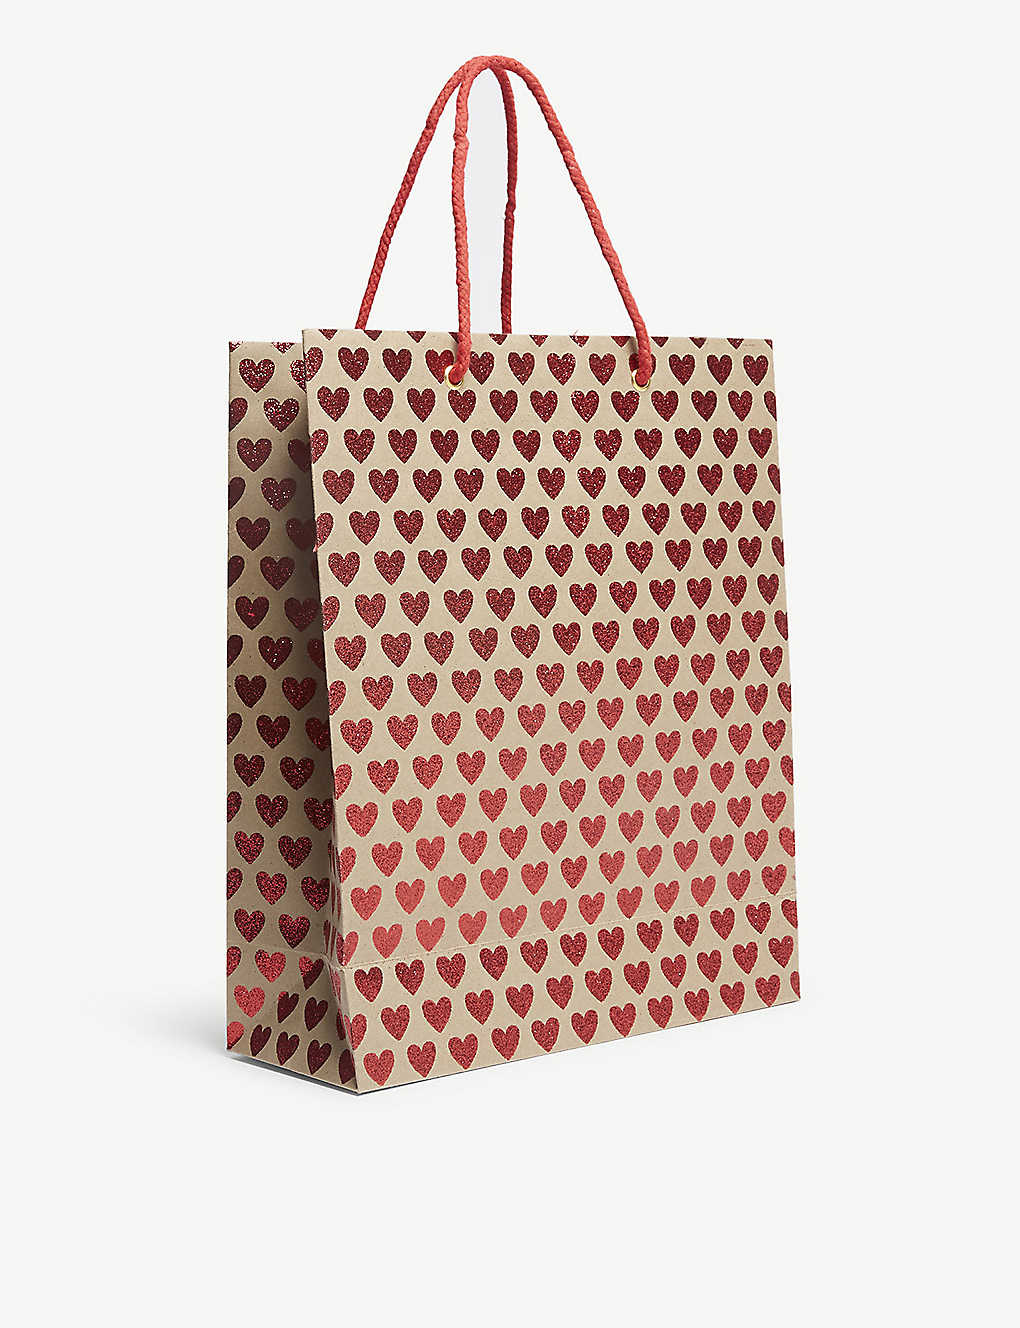 VIVID WRAP: Mini hearts glitter print gift bag 31cm